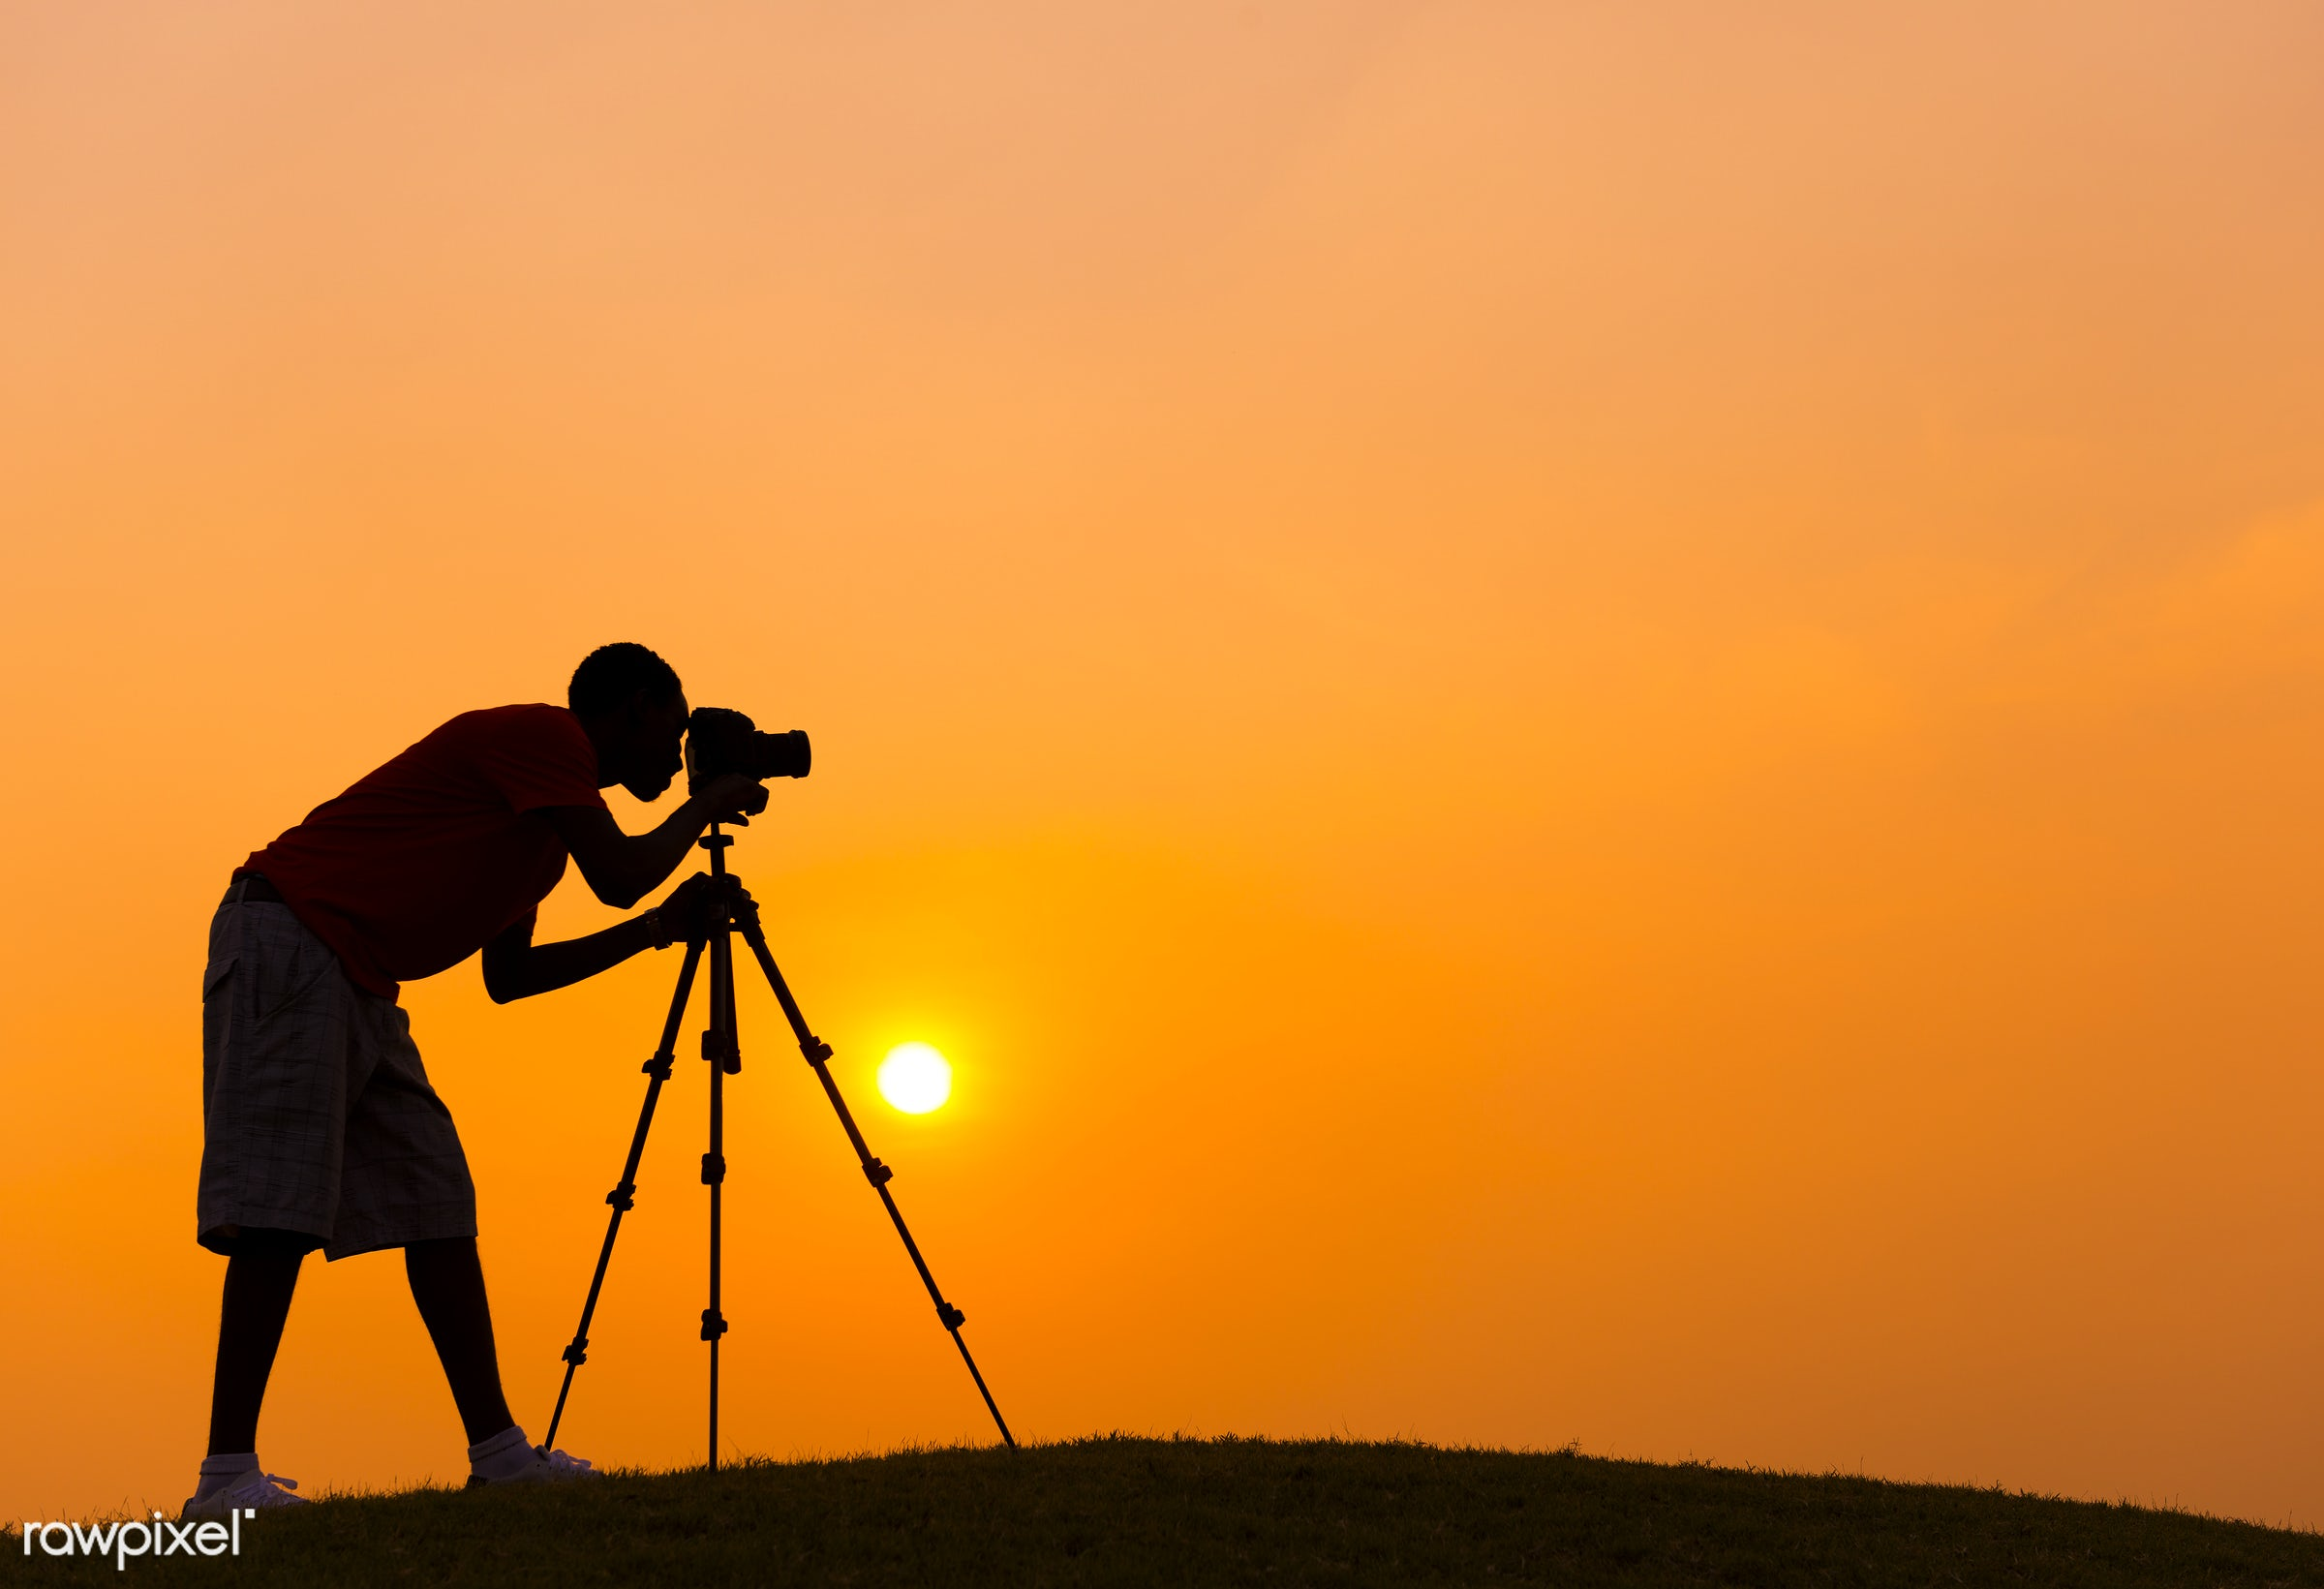 Camera man taking a photo outdoors with a sunset backdrop - travel, camera, dawn, dusk, equipment, evening, golden,...